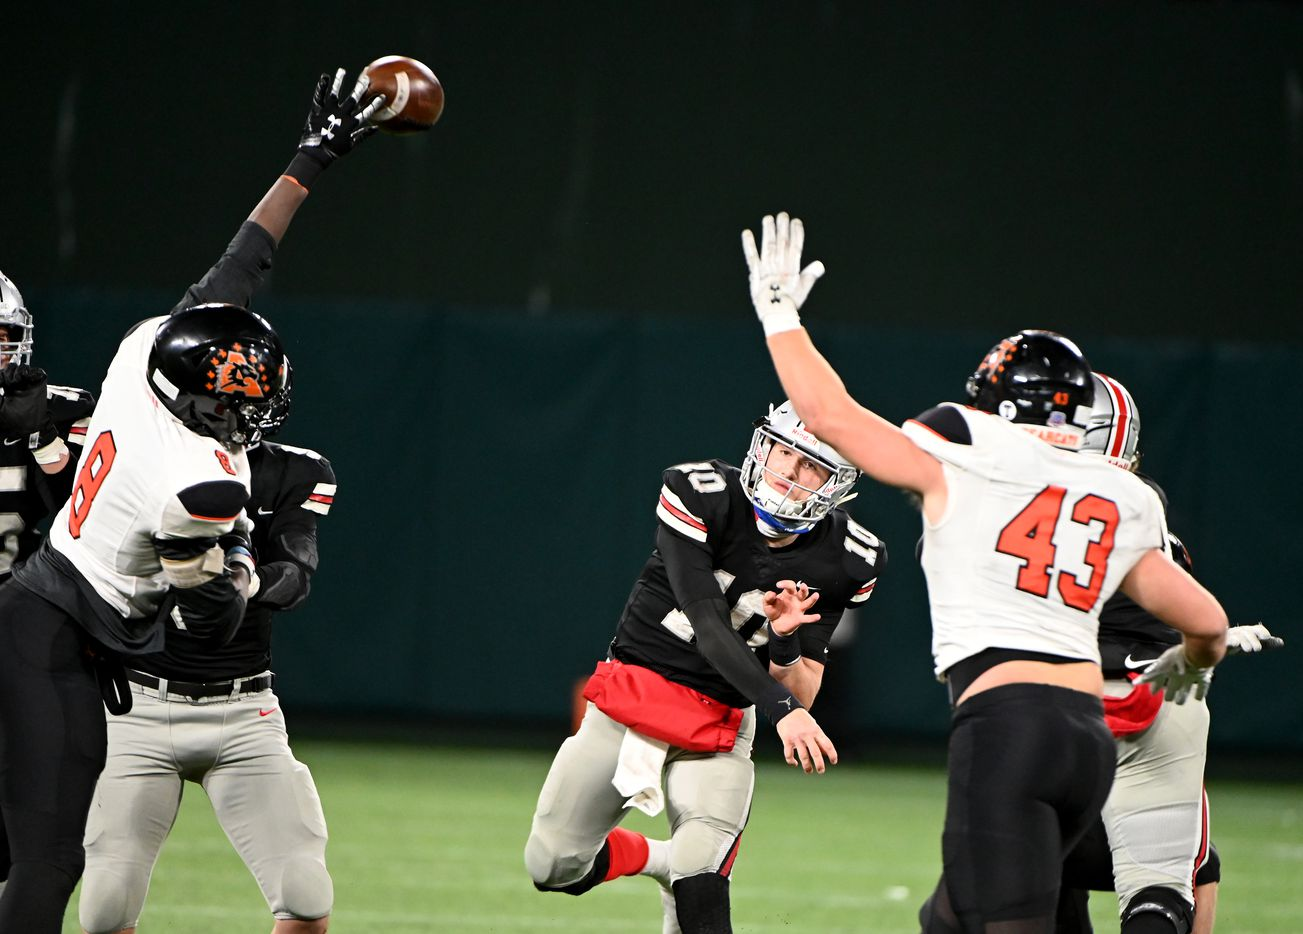 Lovejoy RW Rucker (10) has his pass deflected by Aledo's Chris Wright (8) in the second half of the Class 5A Division II Region II final high school football game between Aledo and Lovejoy, Friday, Jan. 1, 2021, in Arlington, Texas. Aledo won 52-48. (Matt Strasen/Special Contributor)